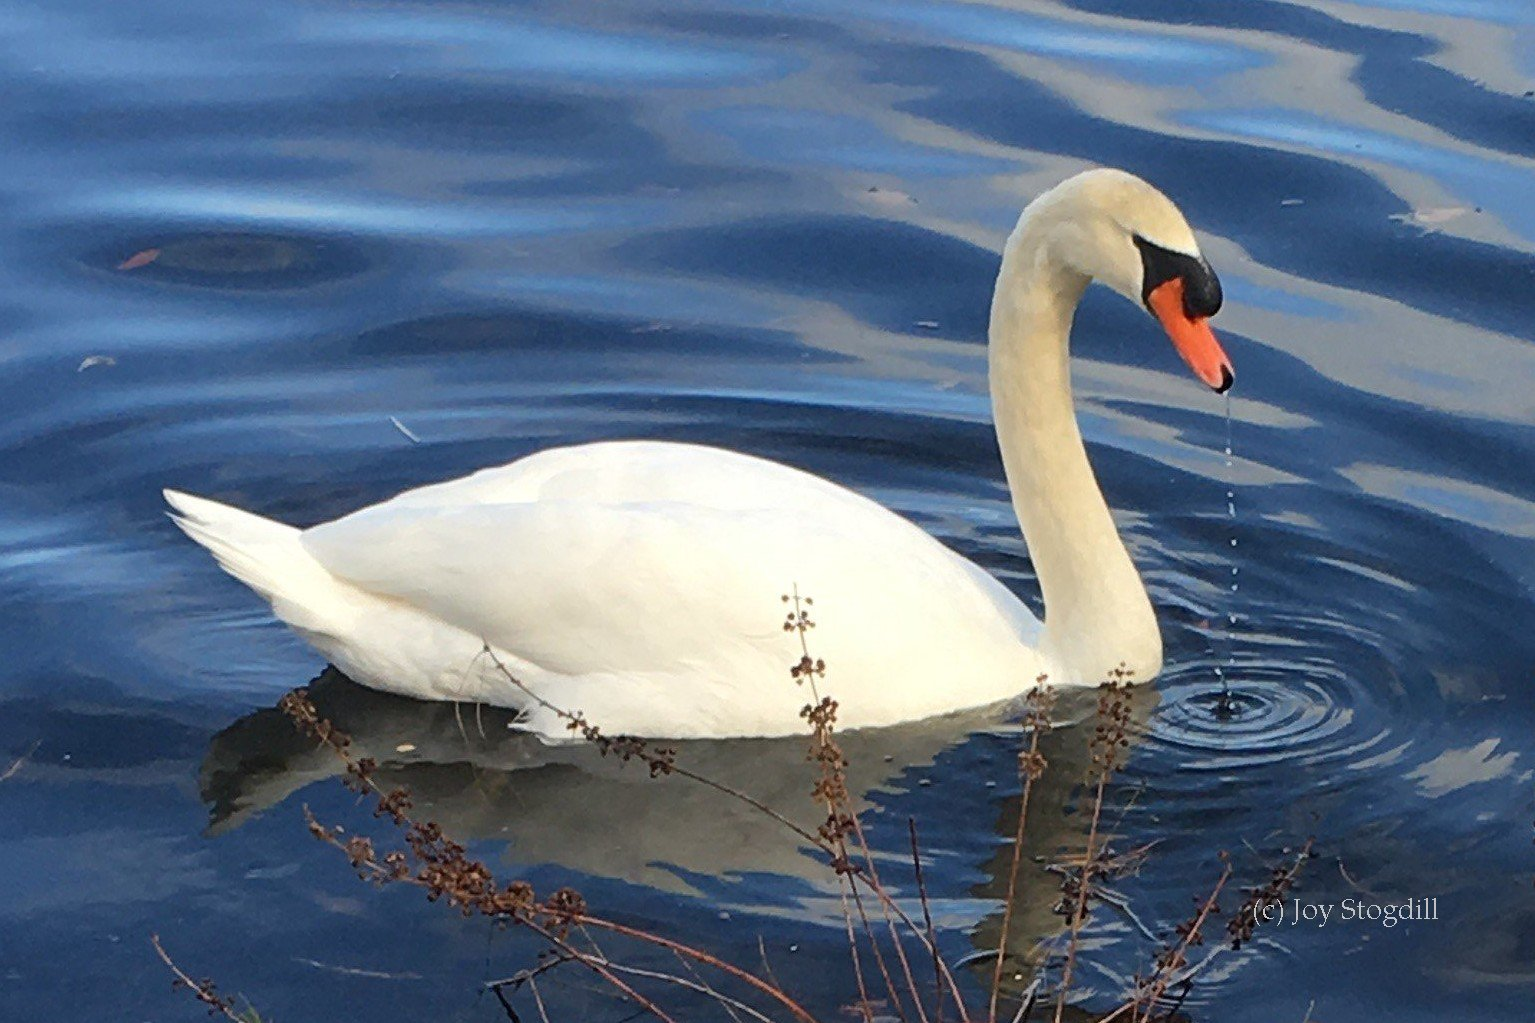 Above: Mute Swan with orange bill and black knob